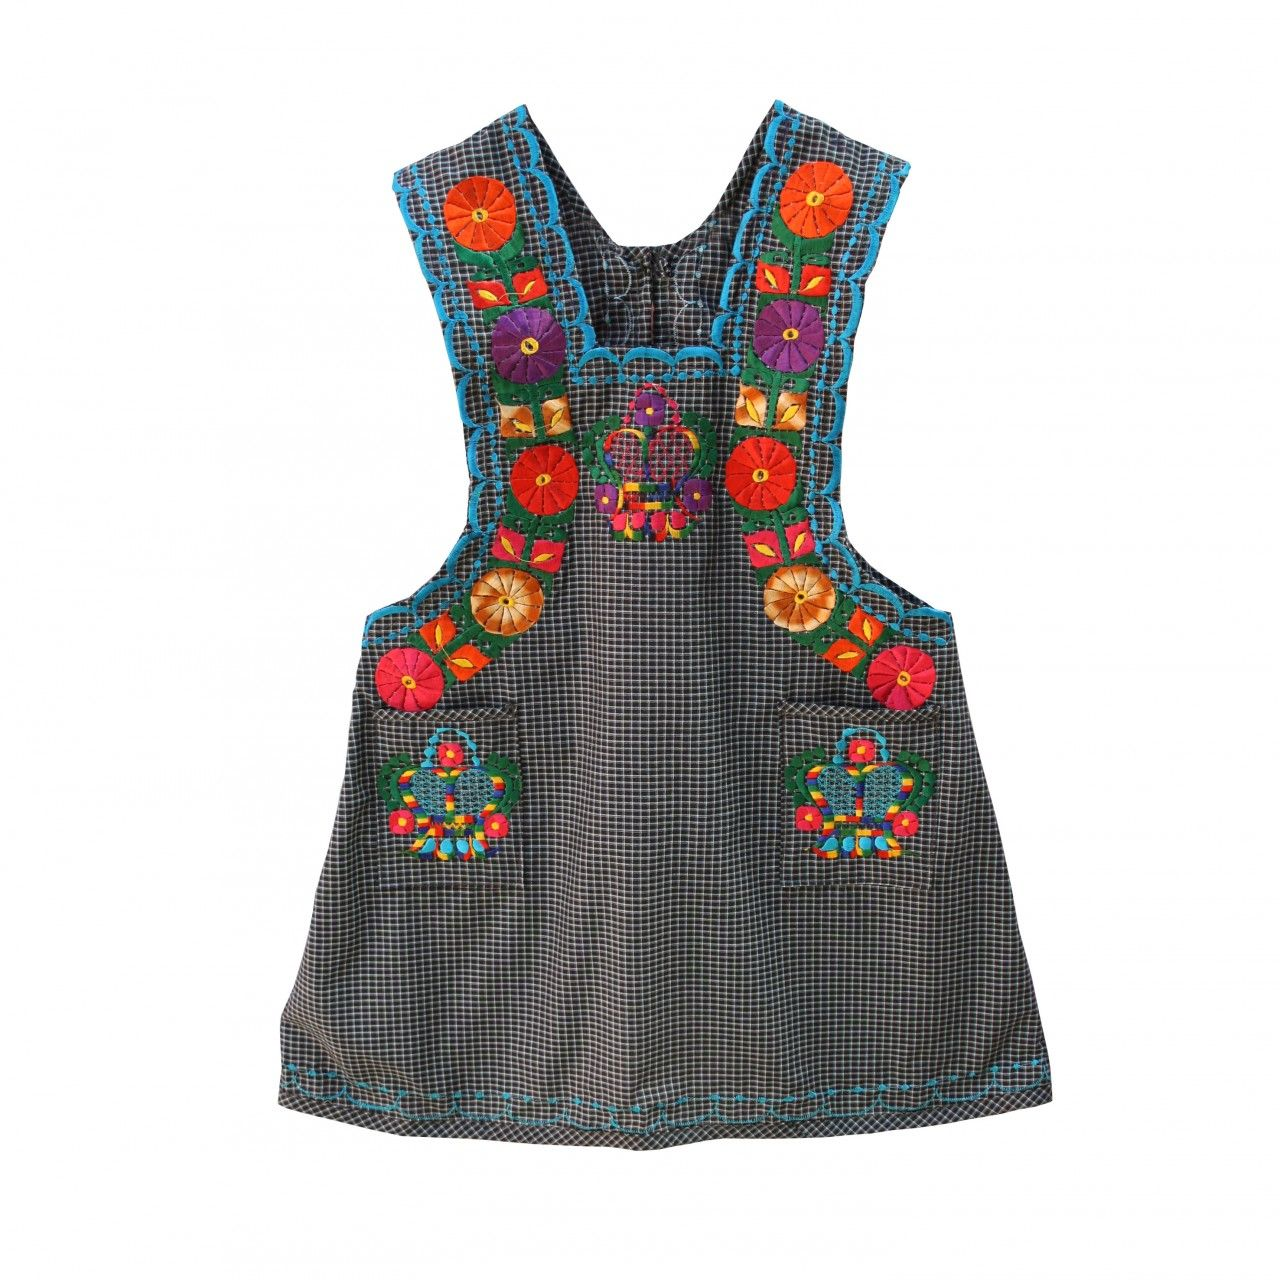 embroidered ladies apron black check w blue flowers ethical embroidered ladies apron black check w blue flowers ethical handmade mexican